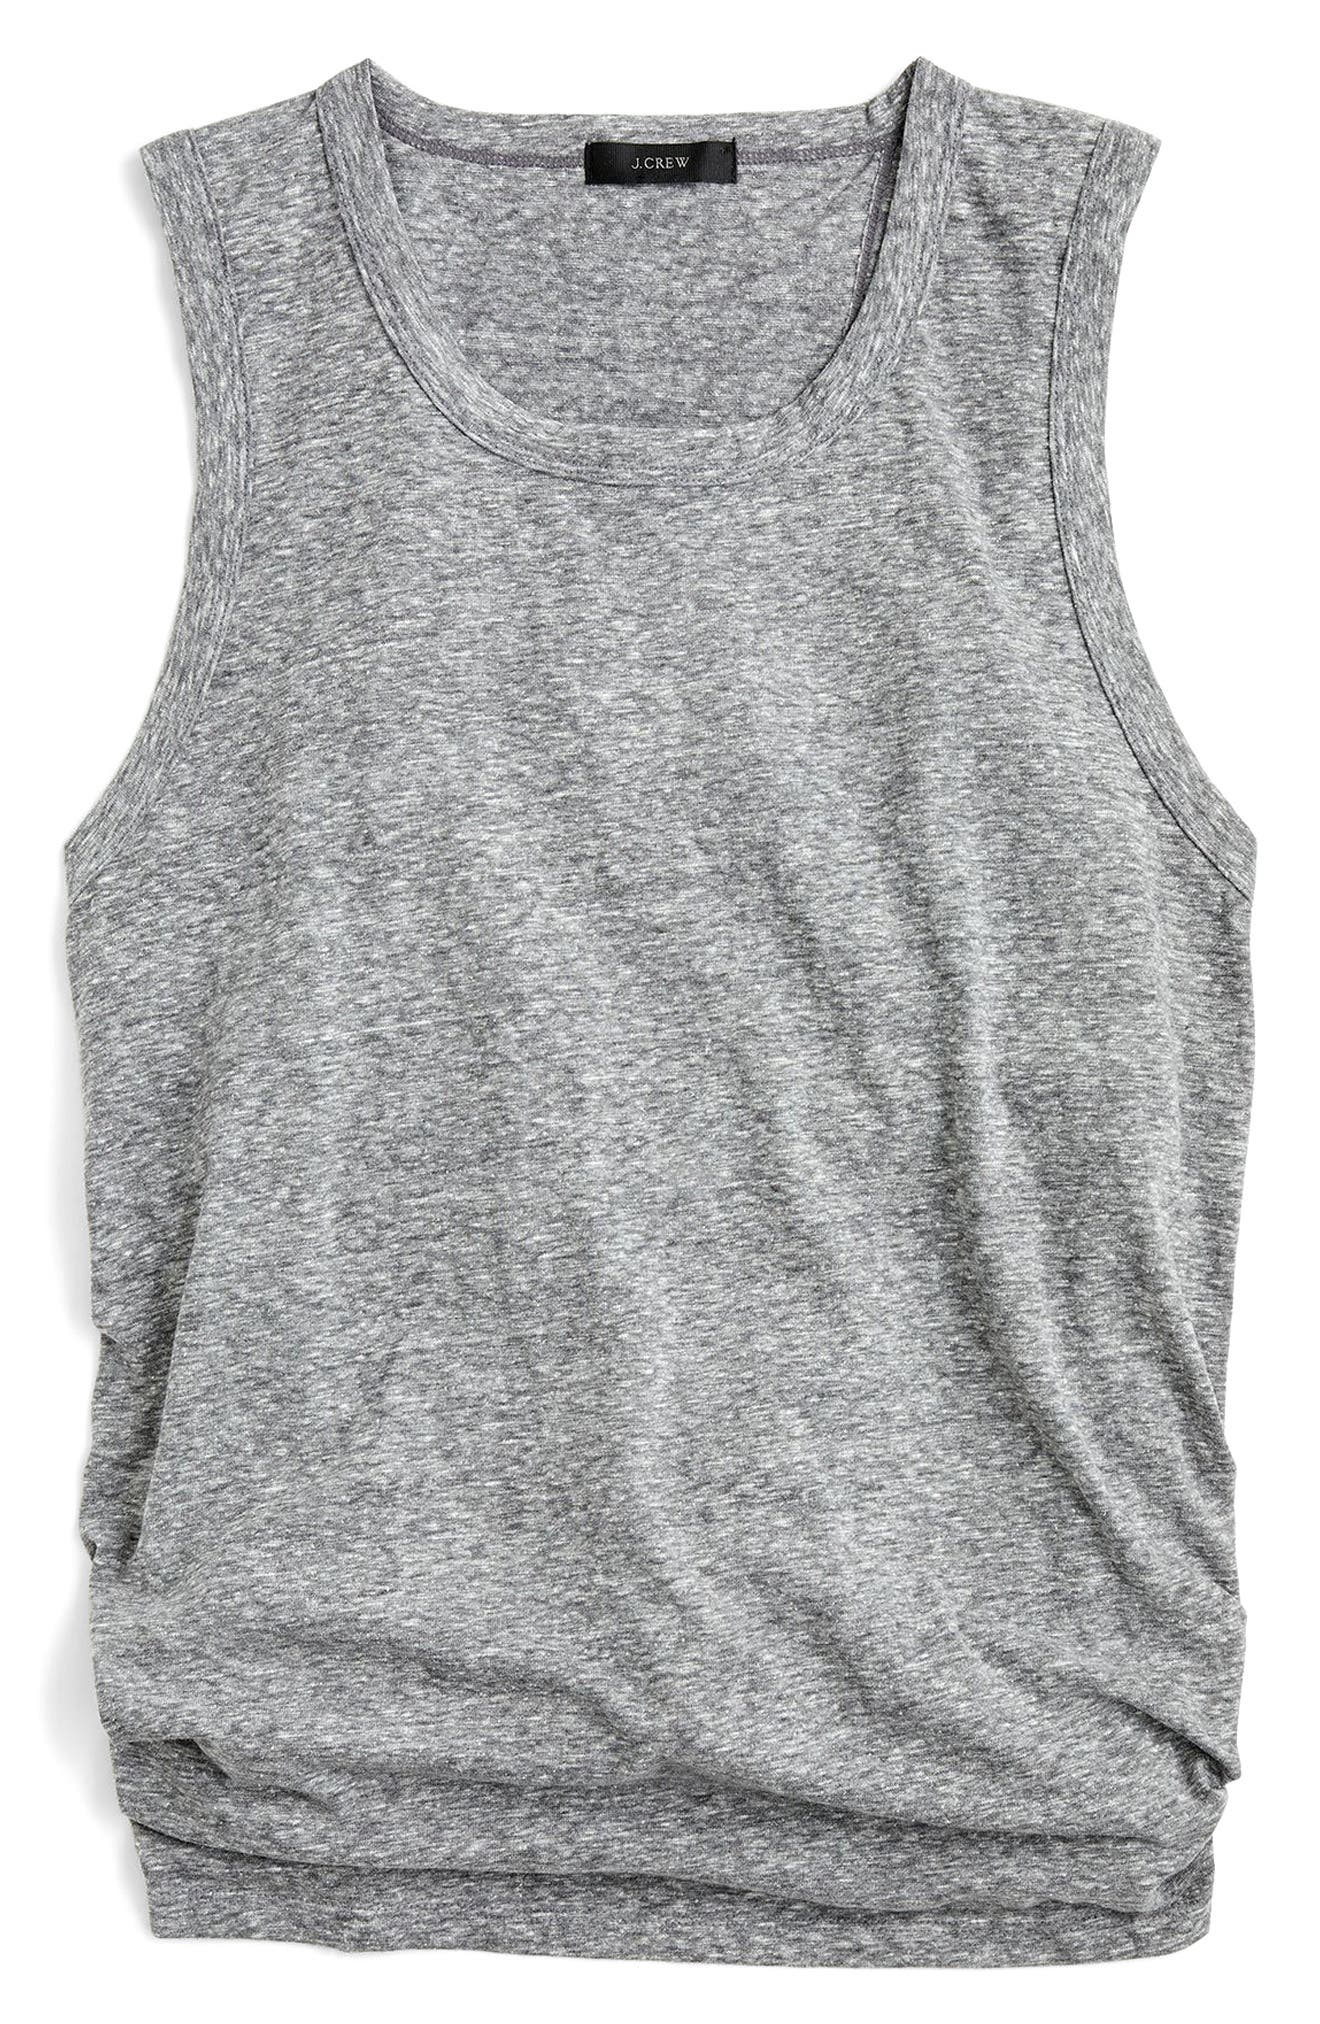 J.Crew Tie-Back Tank Top